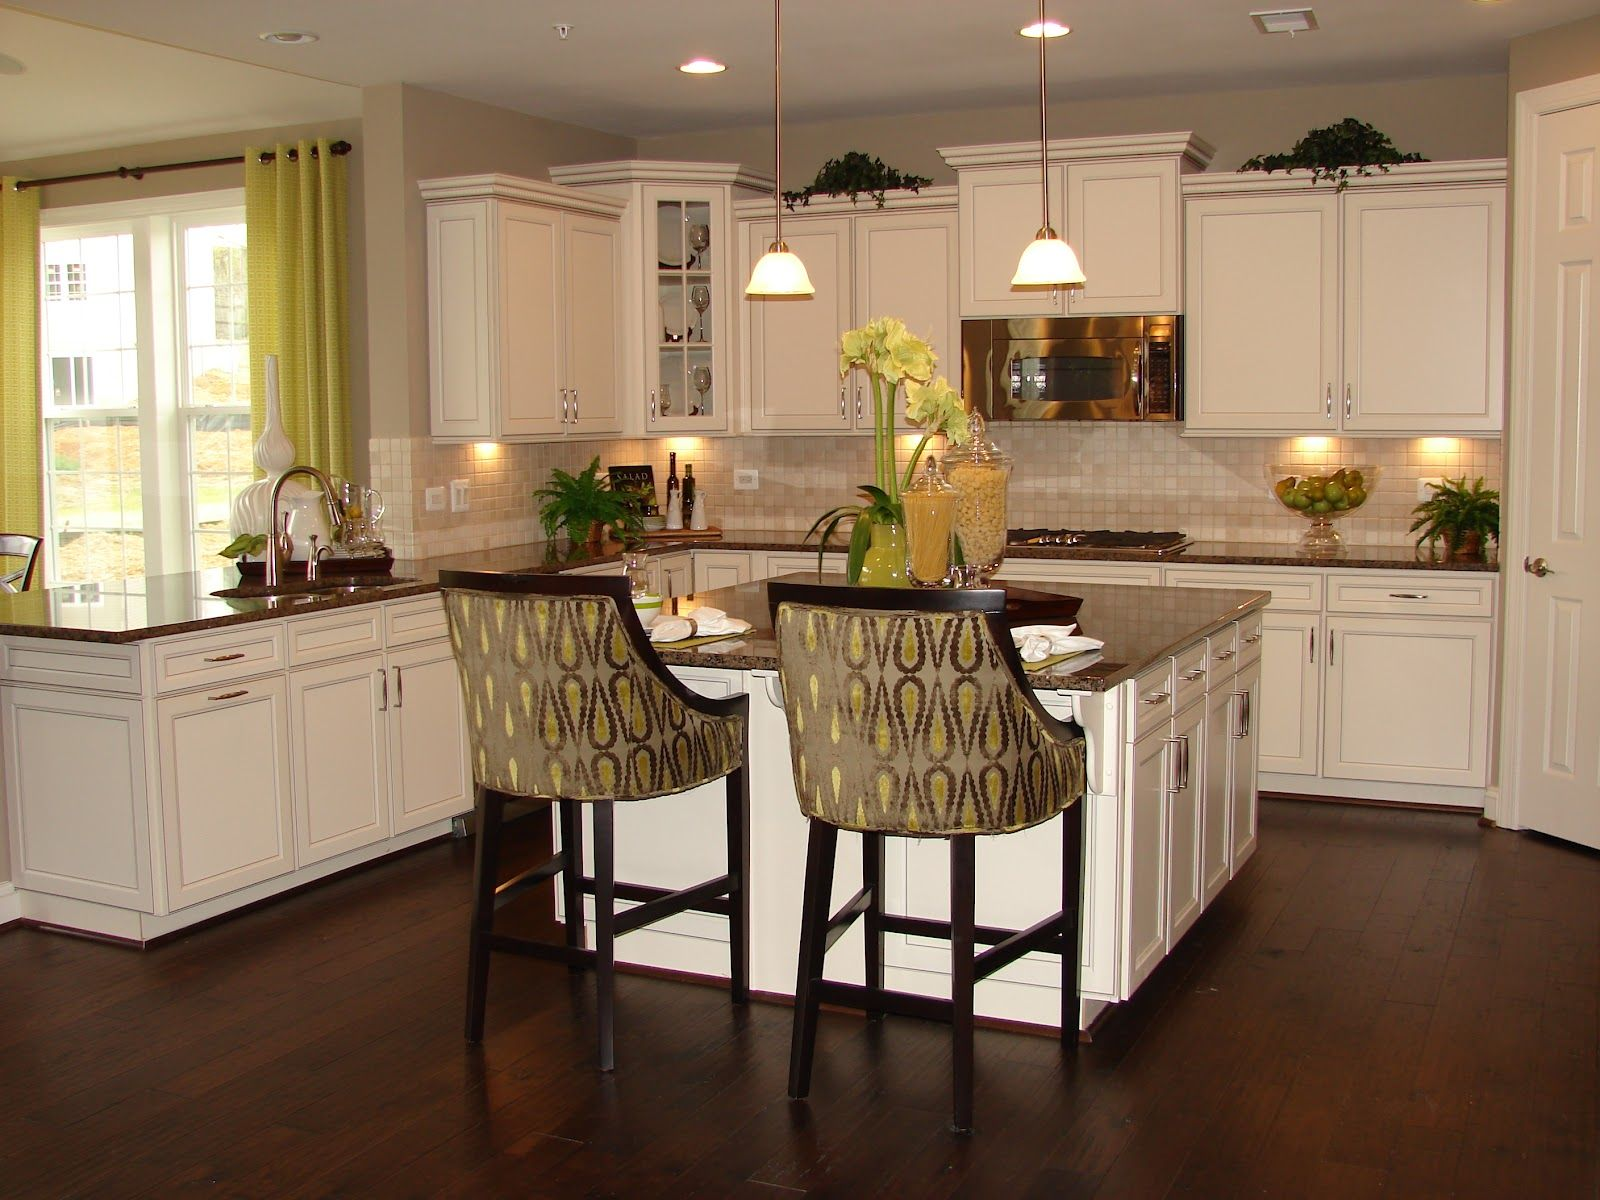 kitchen white cabinet kitchens pictures of kitchens with white cabinets this is my dream kitchen but it is a